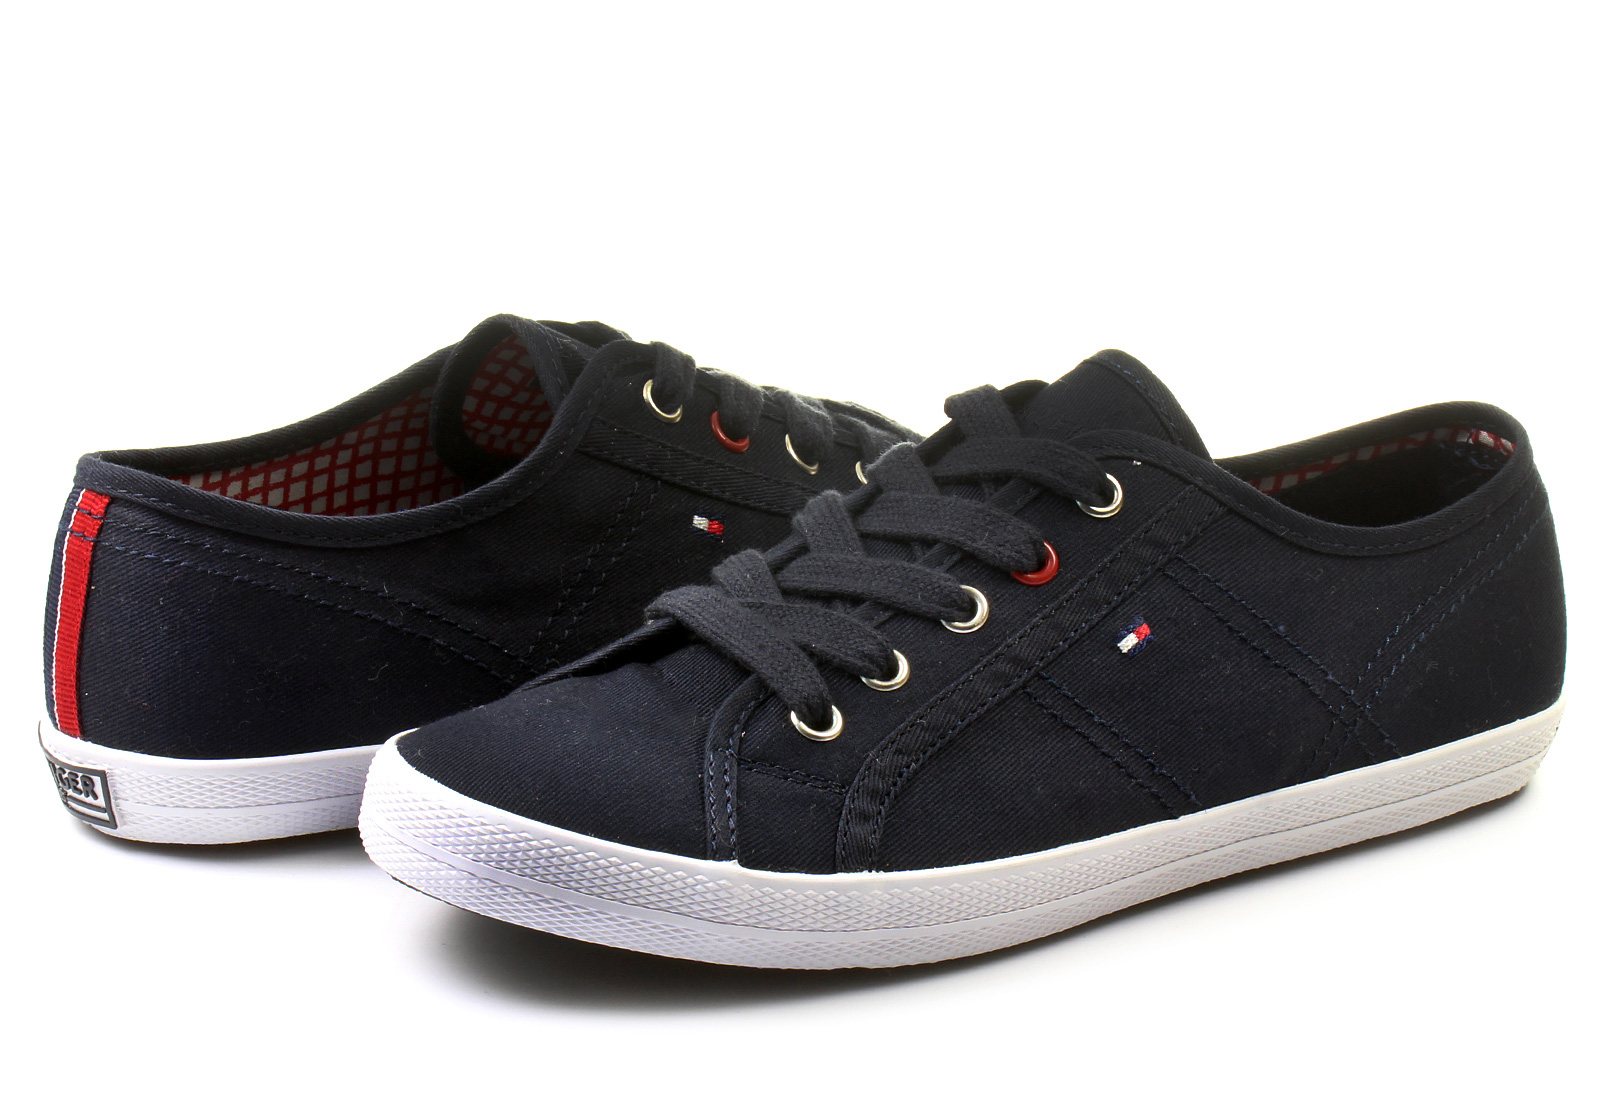 tommy hilfiger sneakers victoria 2d 14s 6884 403 online shop for sneakers shoes and boots. Black Bedroom Furniture Sets. Home Design Ideas